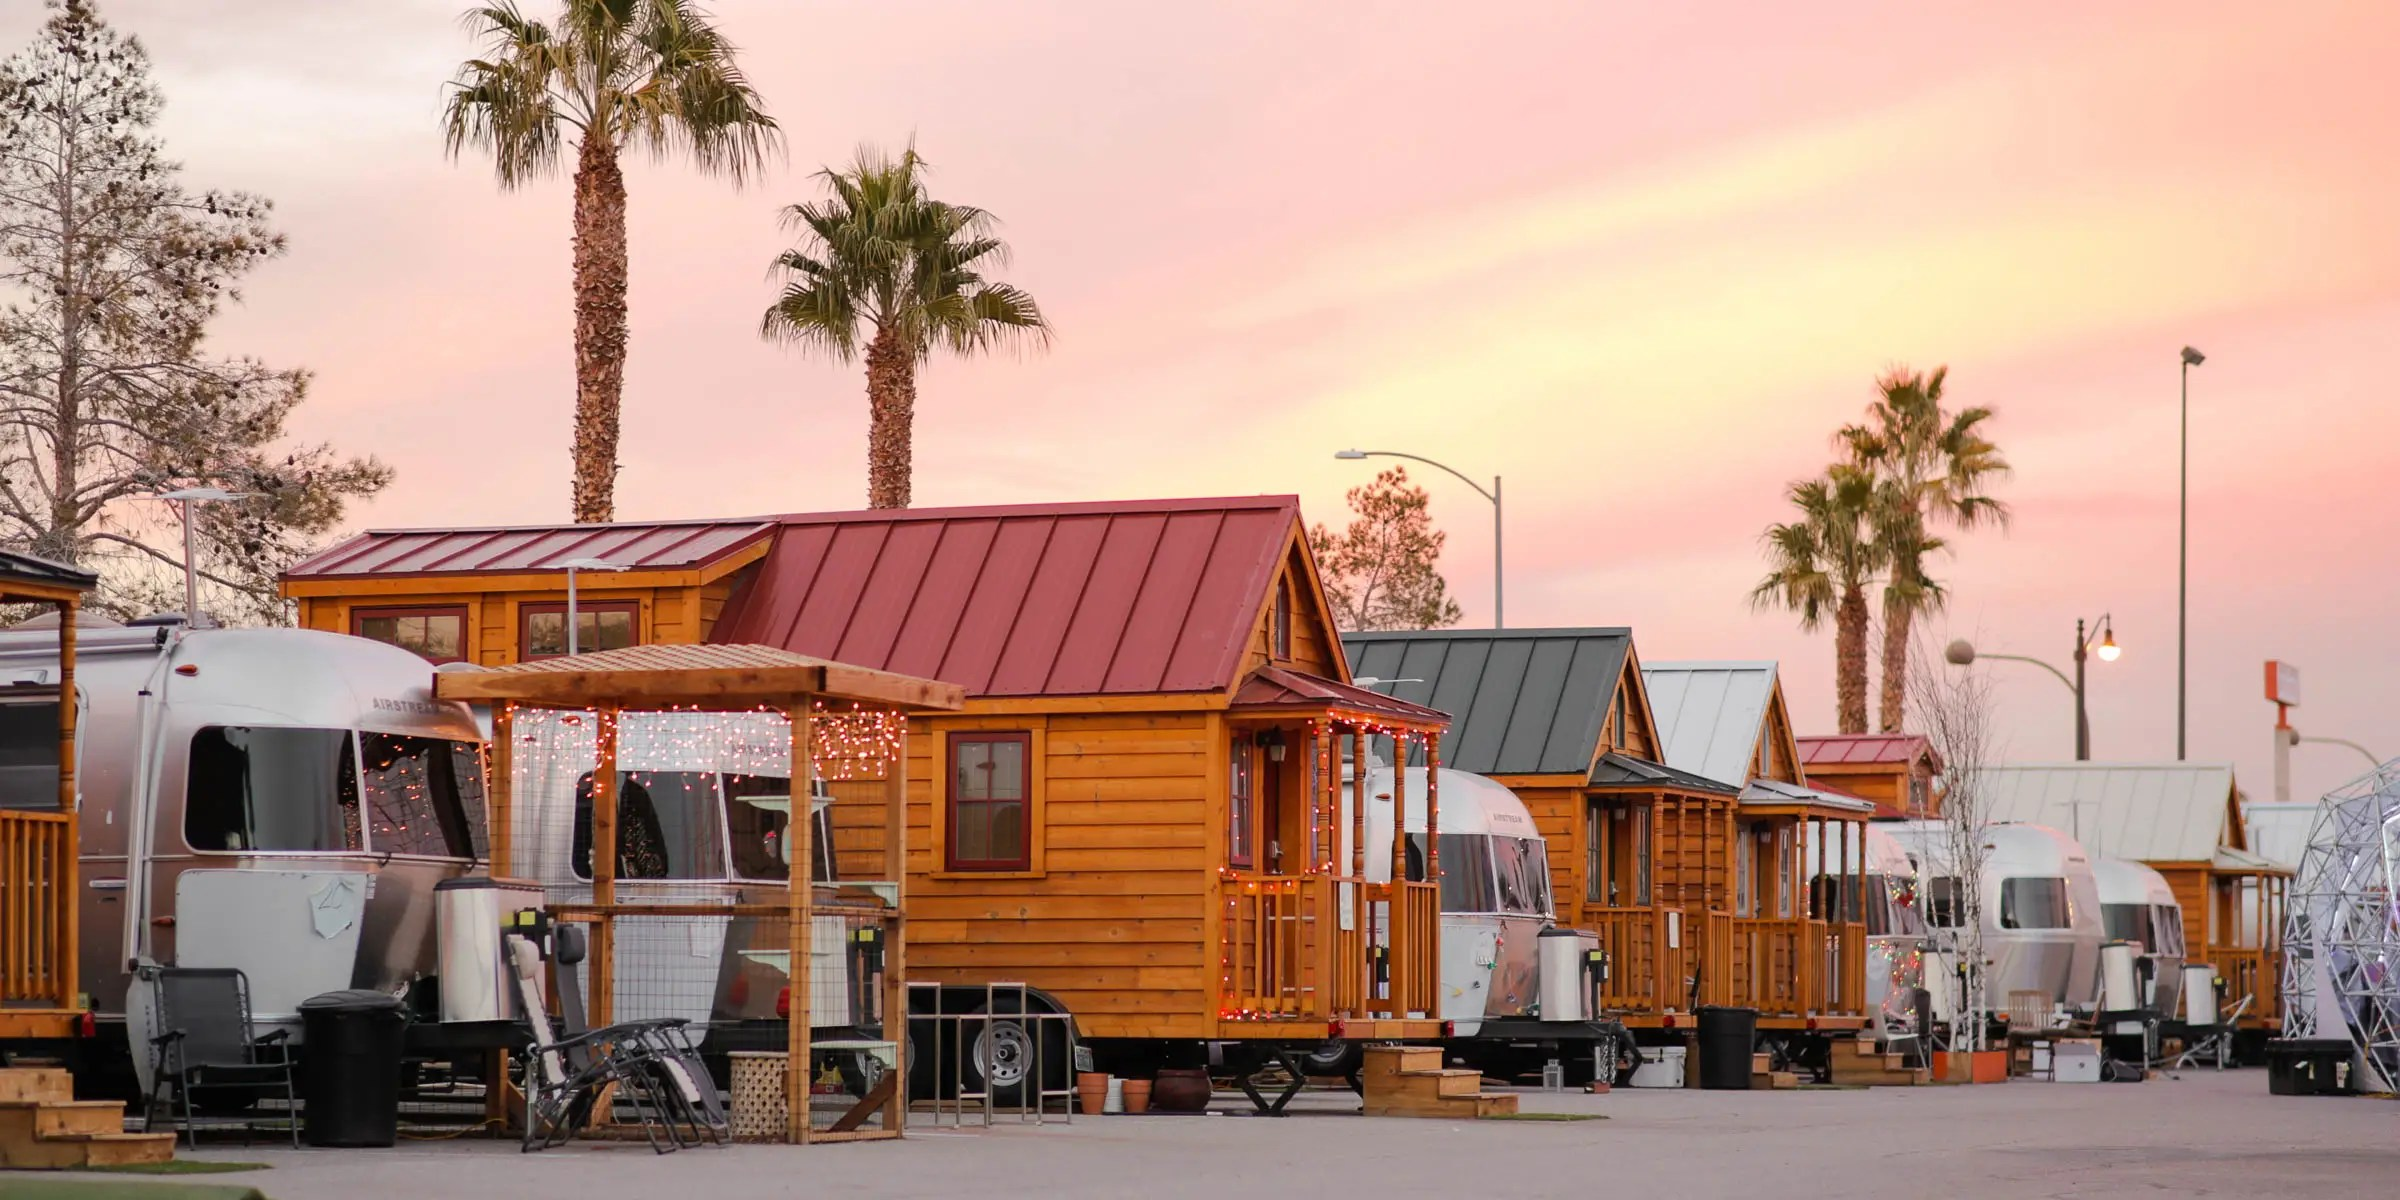 Outside Las Vegas, Nevada, the couple had the time of their lives at Llamapolis, a community of Airstreams trailers and tiny houses. The Zappos CEO calls it home.